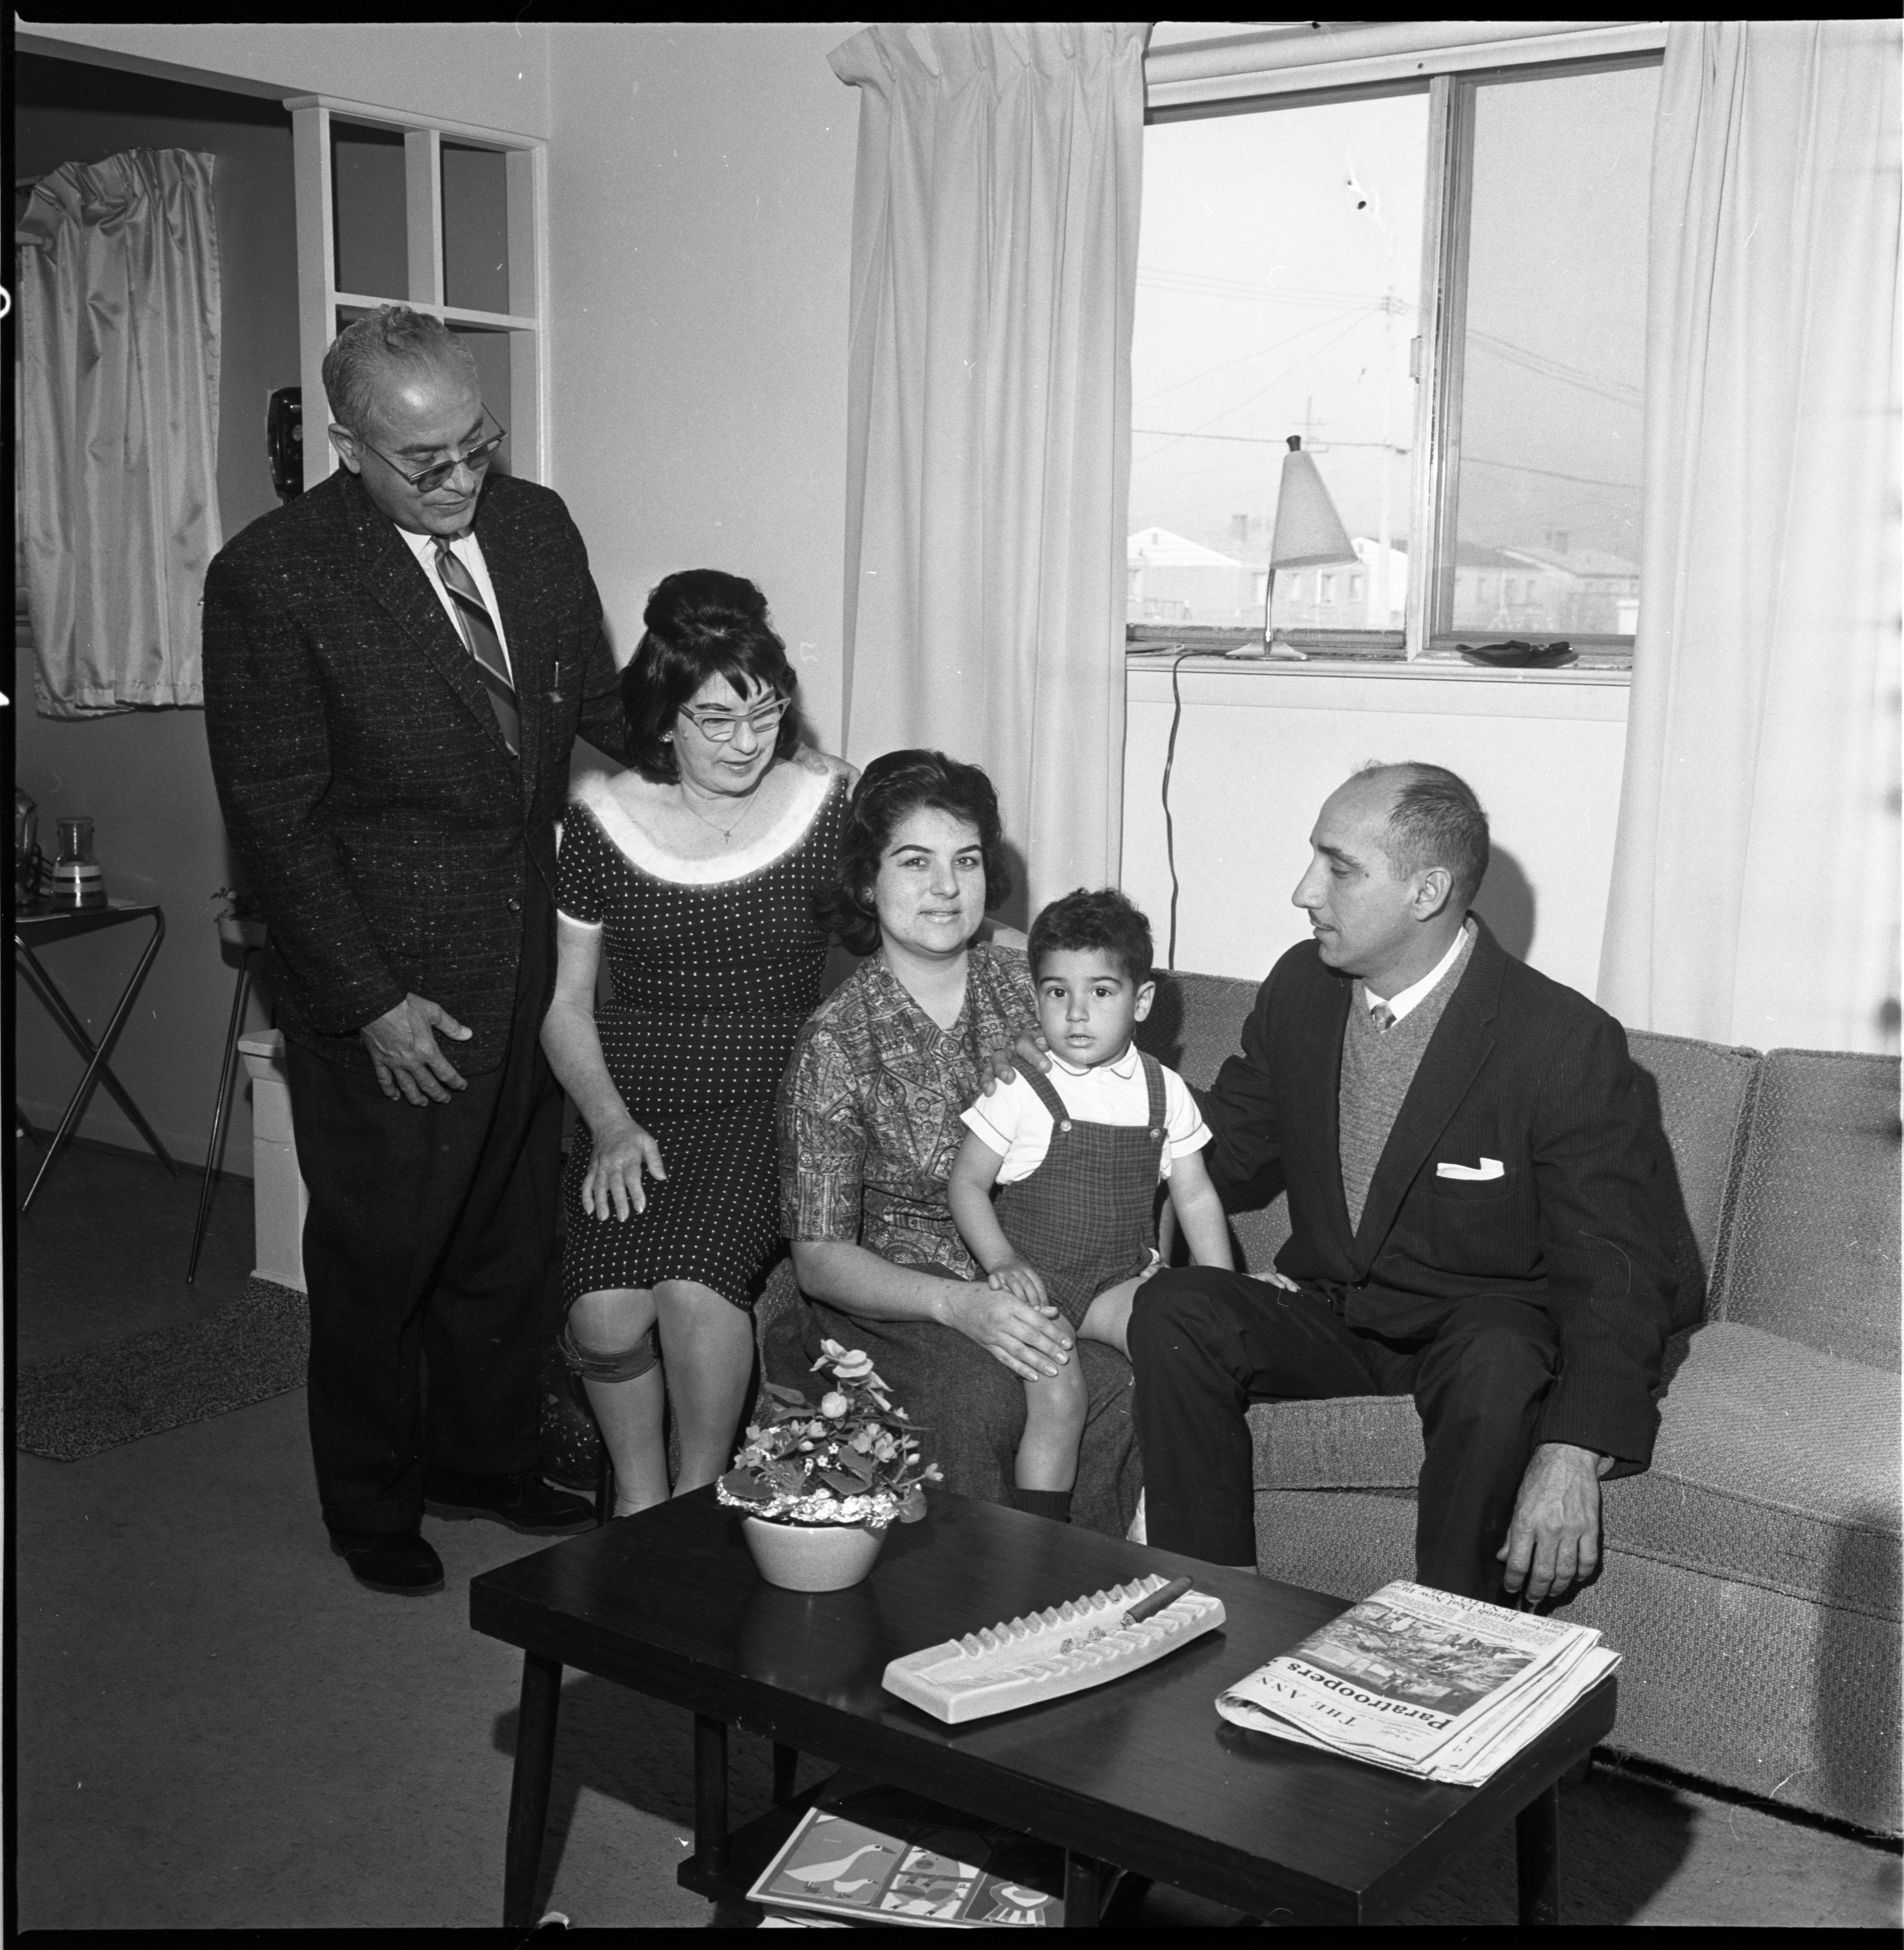 Cuban Refugee Family Celebrates Thanksgiving With Friends In Ann Arbor, November 1964 image